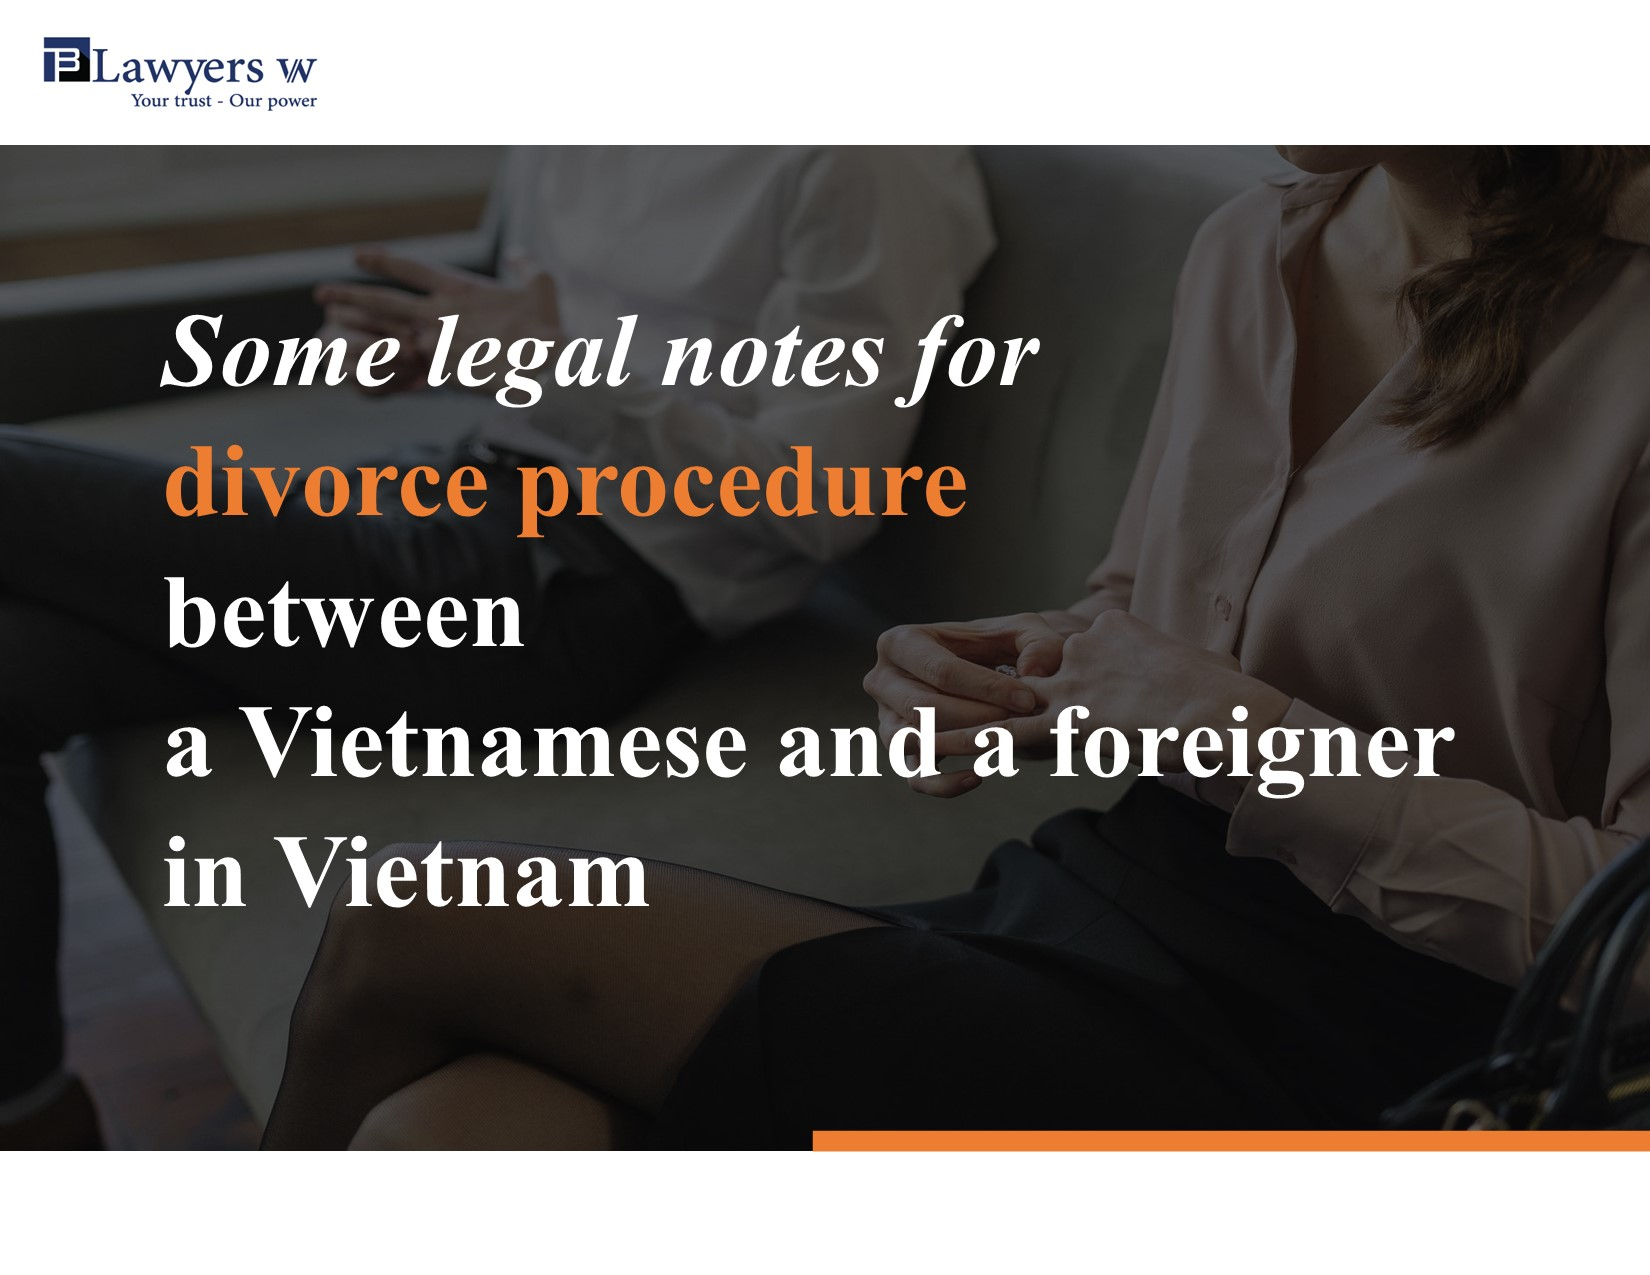 Legal notes for divorce between Vietnamese and foreigner in Vietnam